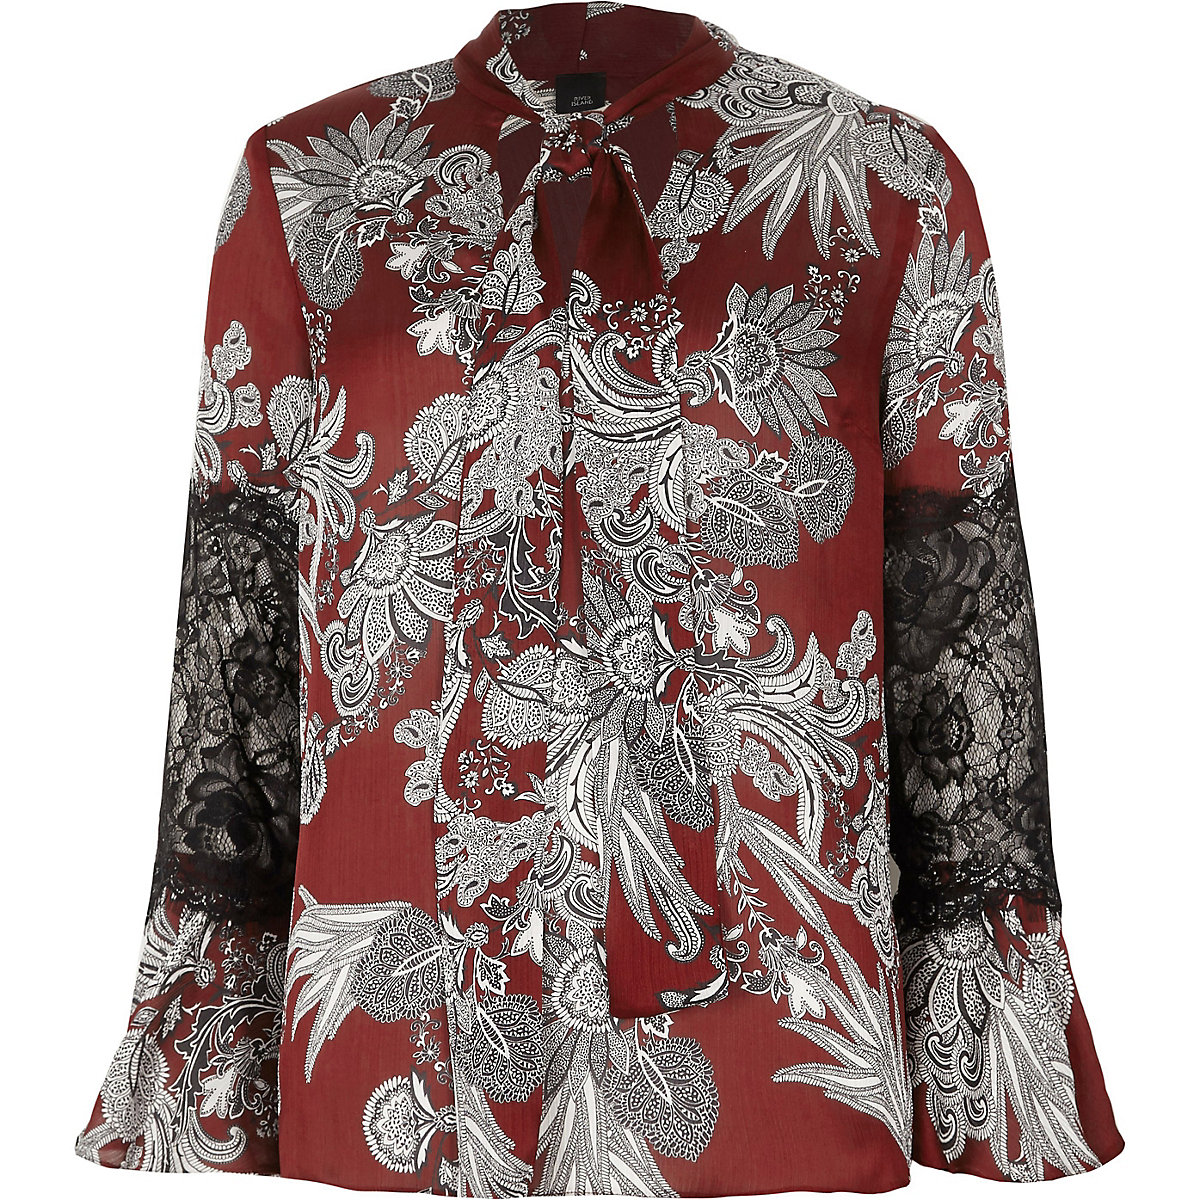 Red floral print lace insert blouse